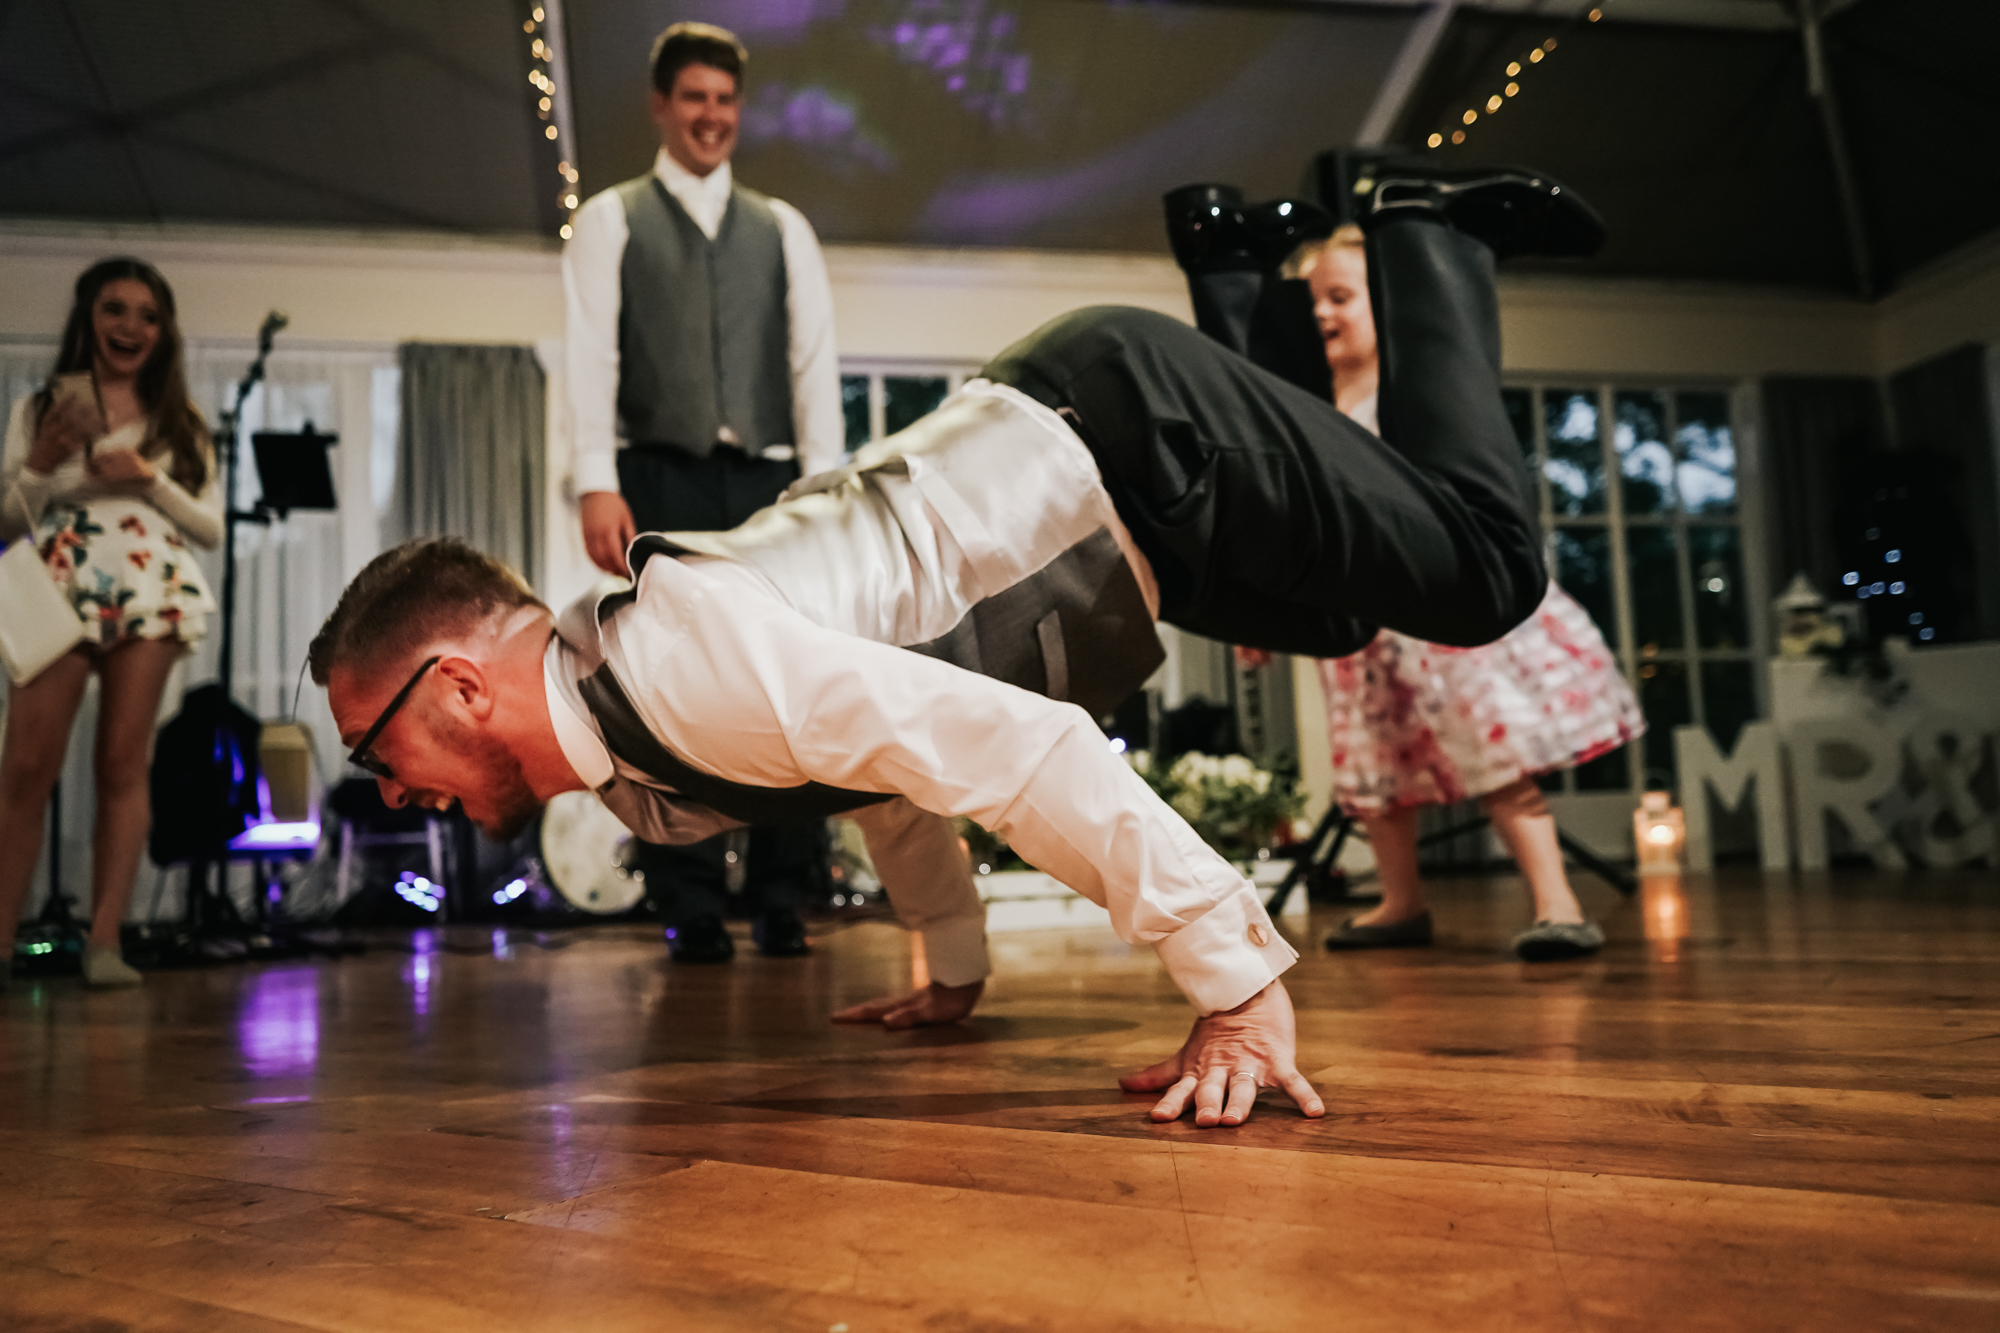 Mere Court Hotel Wedding Photography Cheshire wedding photographer (42 of 45).jpg